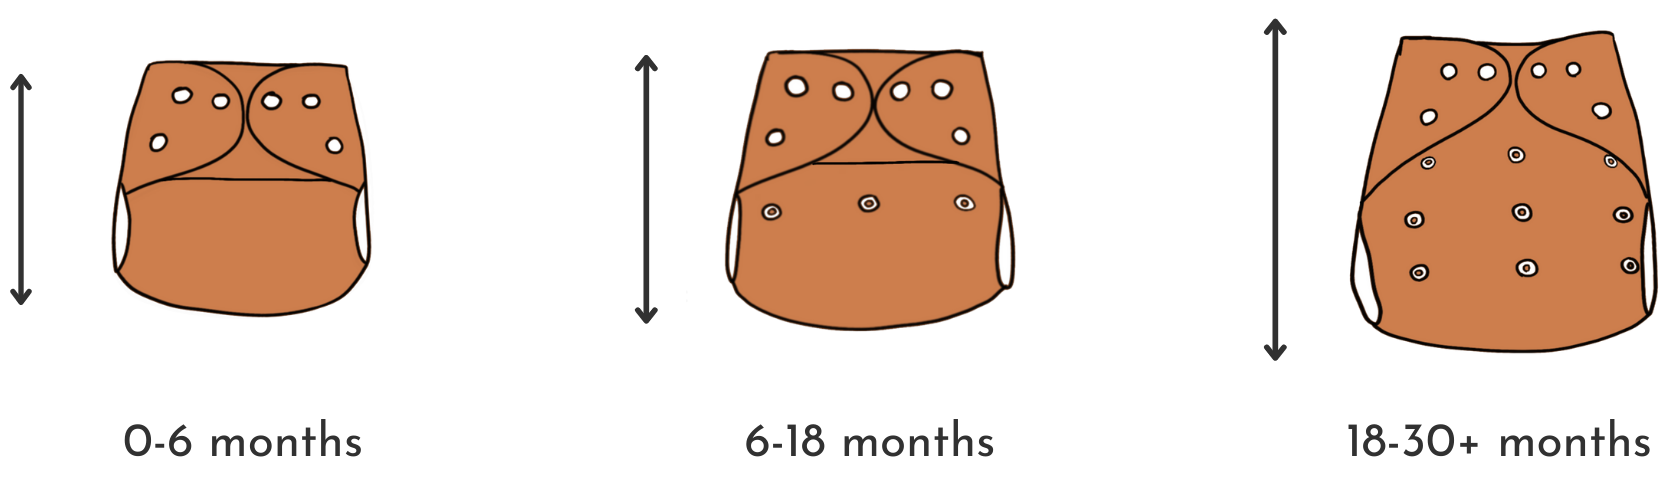 Roam reusable nappies illustrated sizing and fit guide.